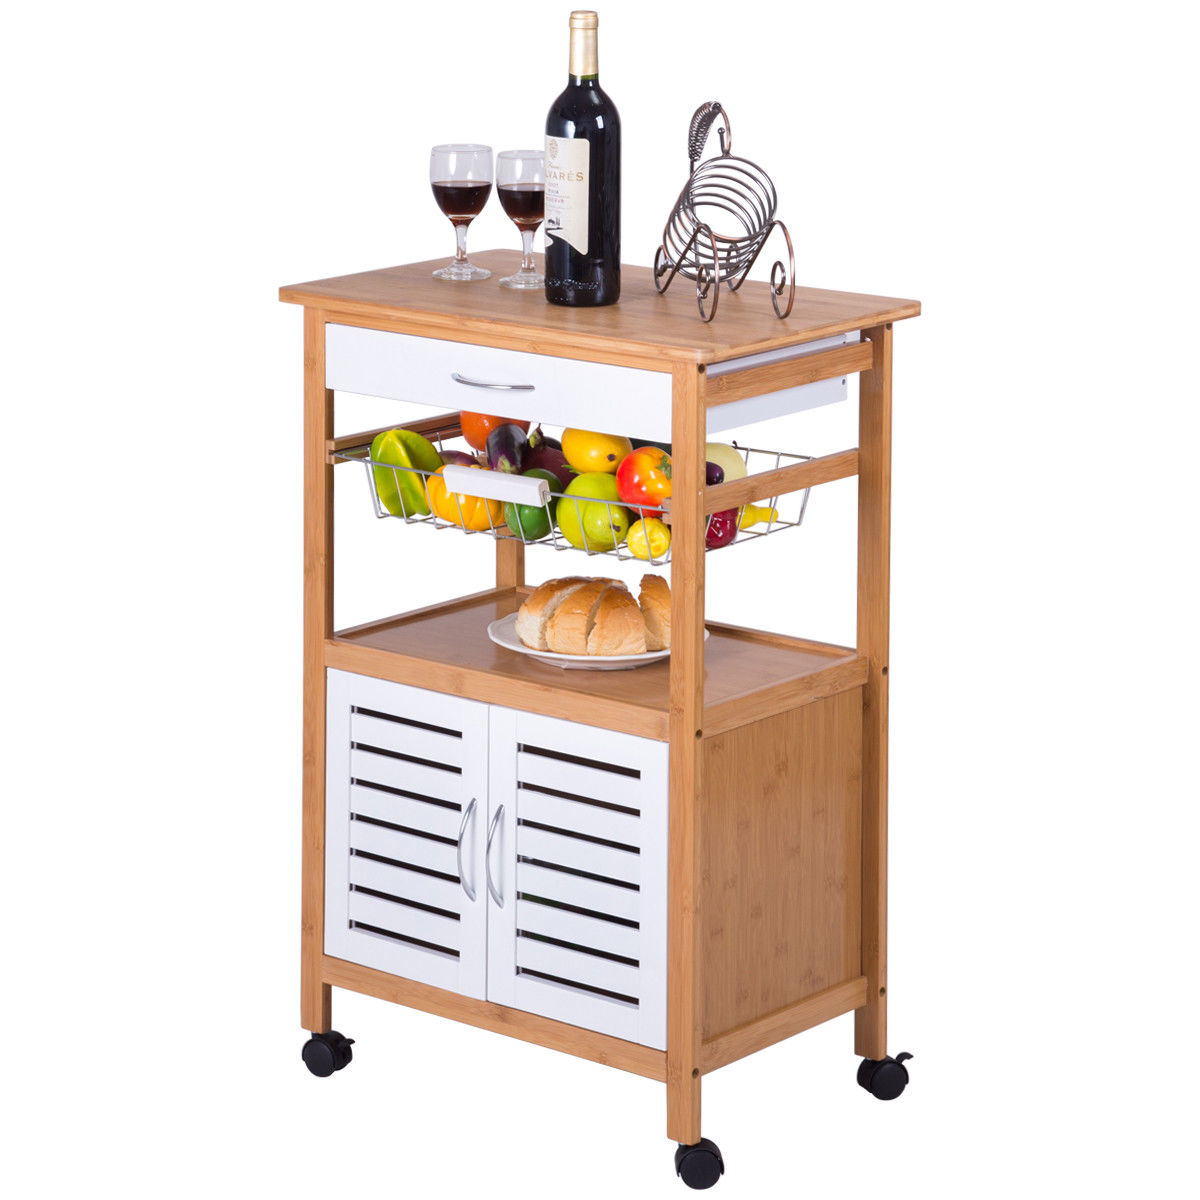 Gymax Bamboo Rolling Kitchen Trolley Cart Island Storage Cabinet w/Drawer&Basket New